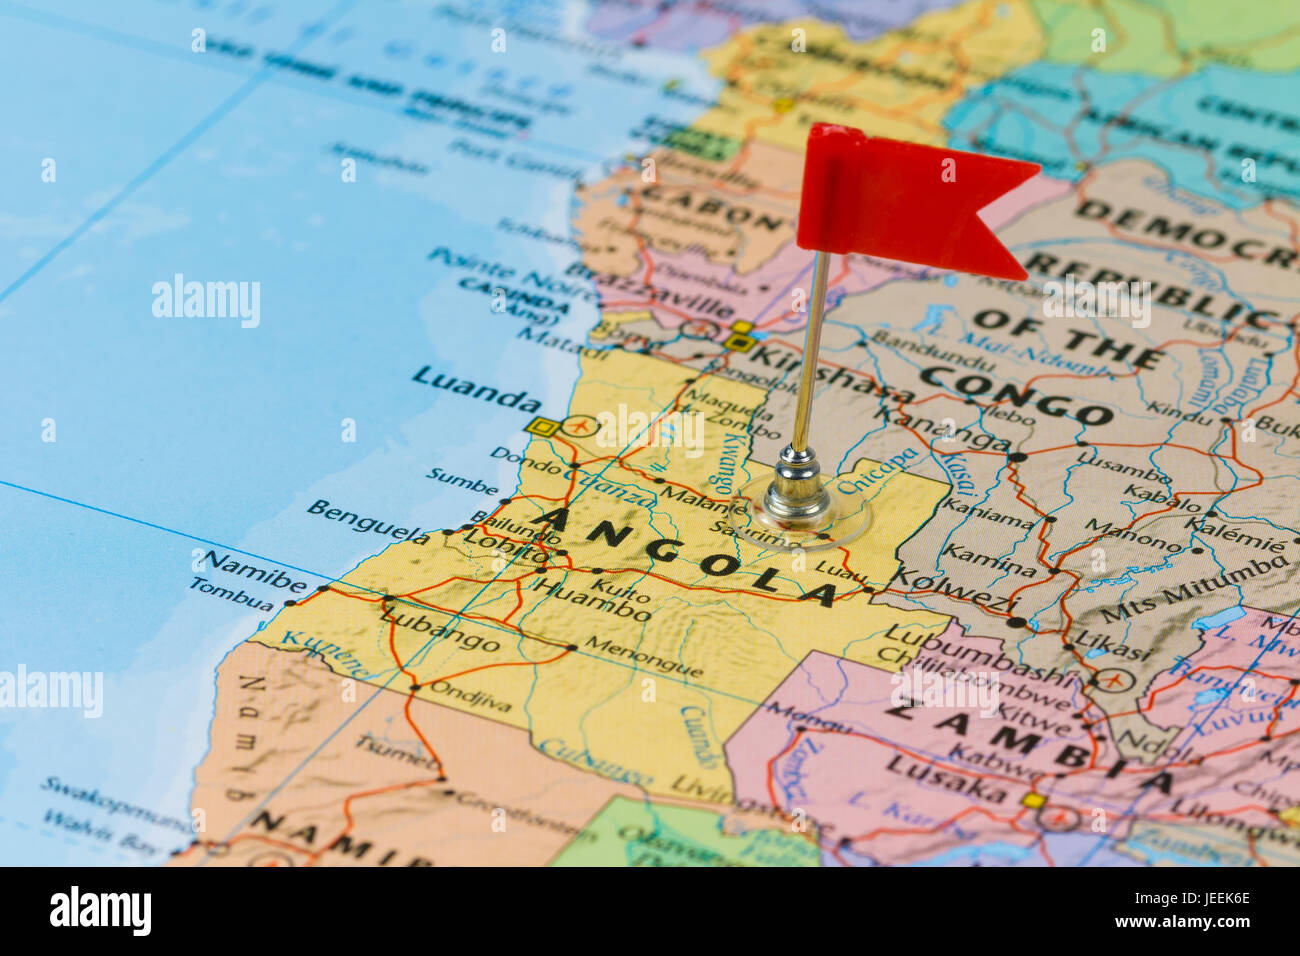 Photo of Angola marked by red flag in holder. Country on African continent. - Stock Image